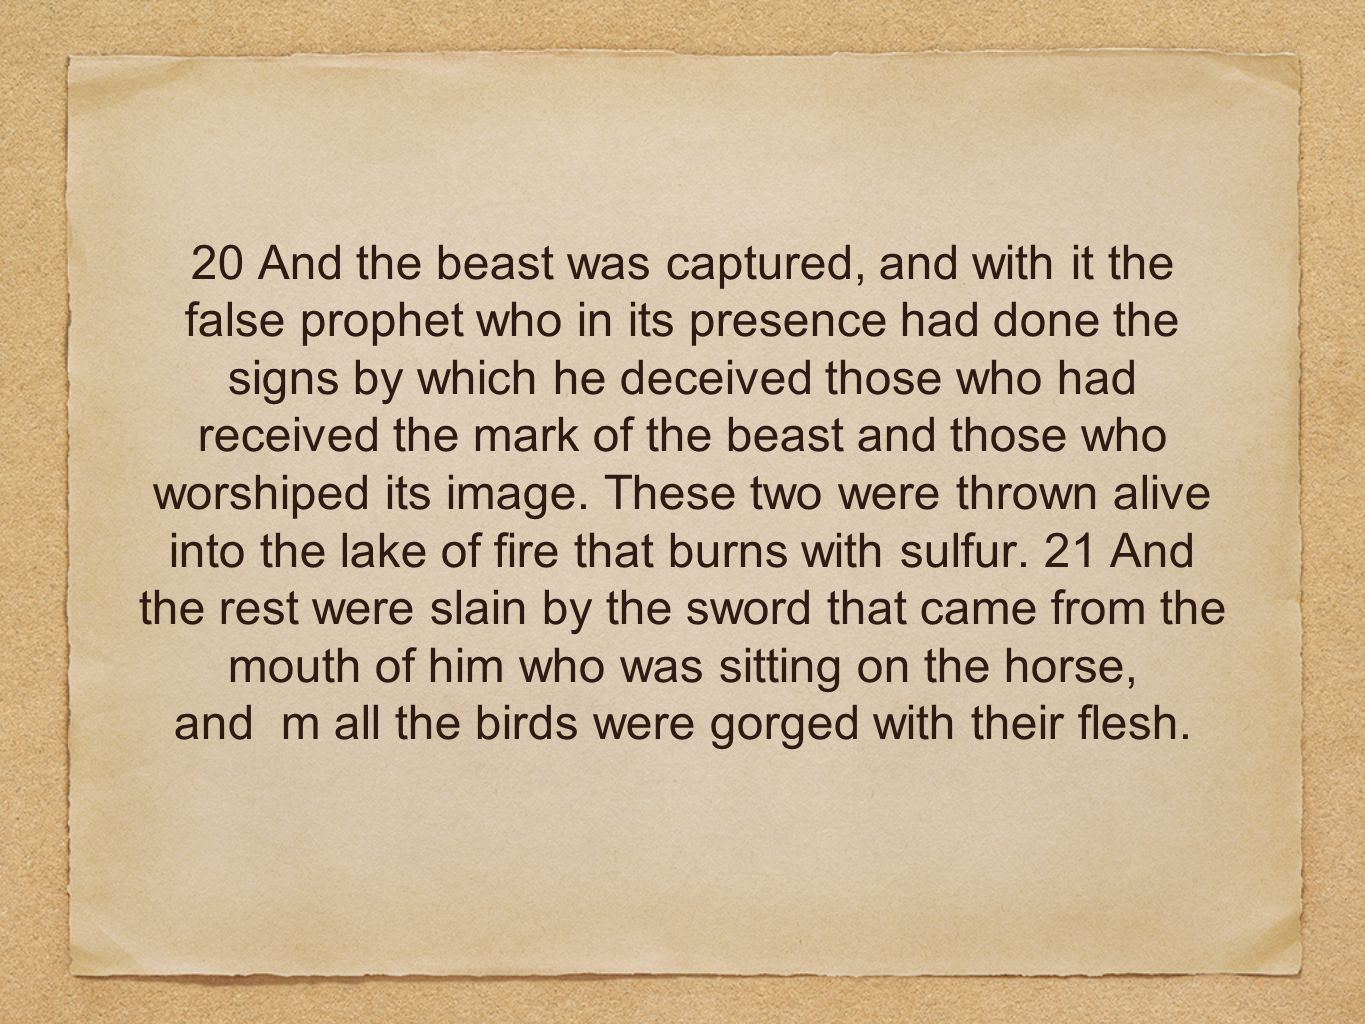 20 And the beast was captured, and with it the false prophet who in its presence had done the signs by which he deceived those who had received the mark of the beast and those who worshiped its image.